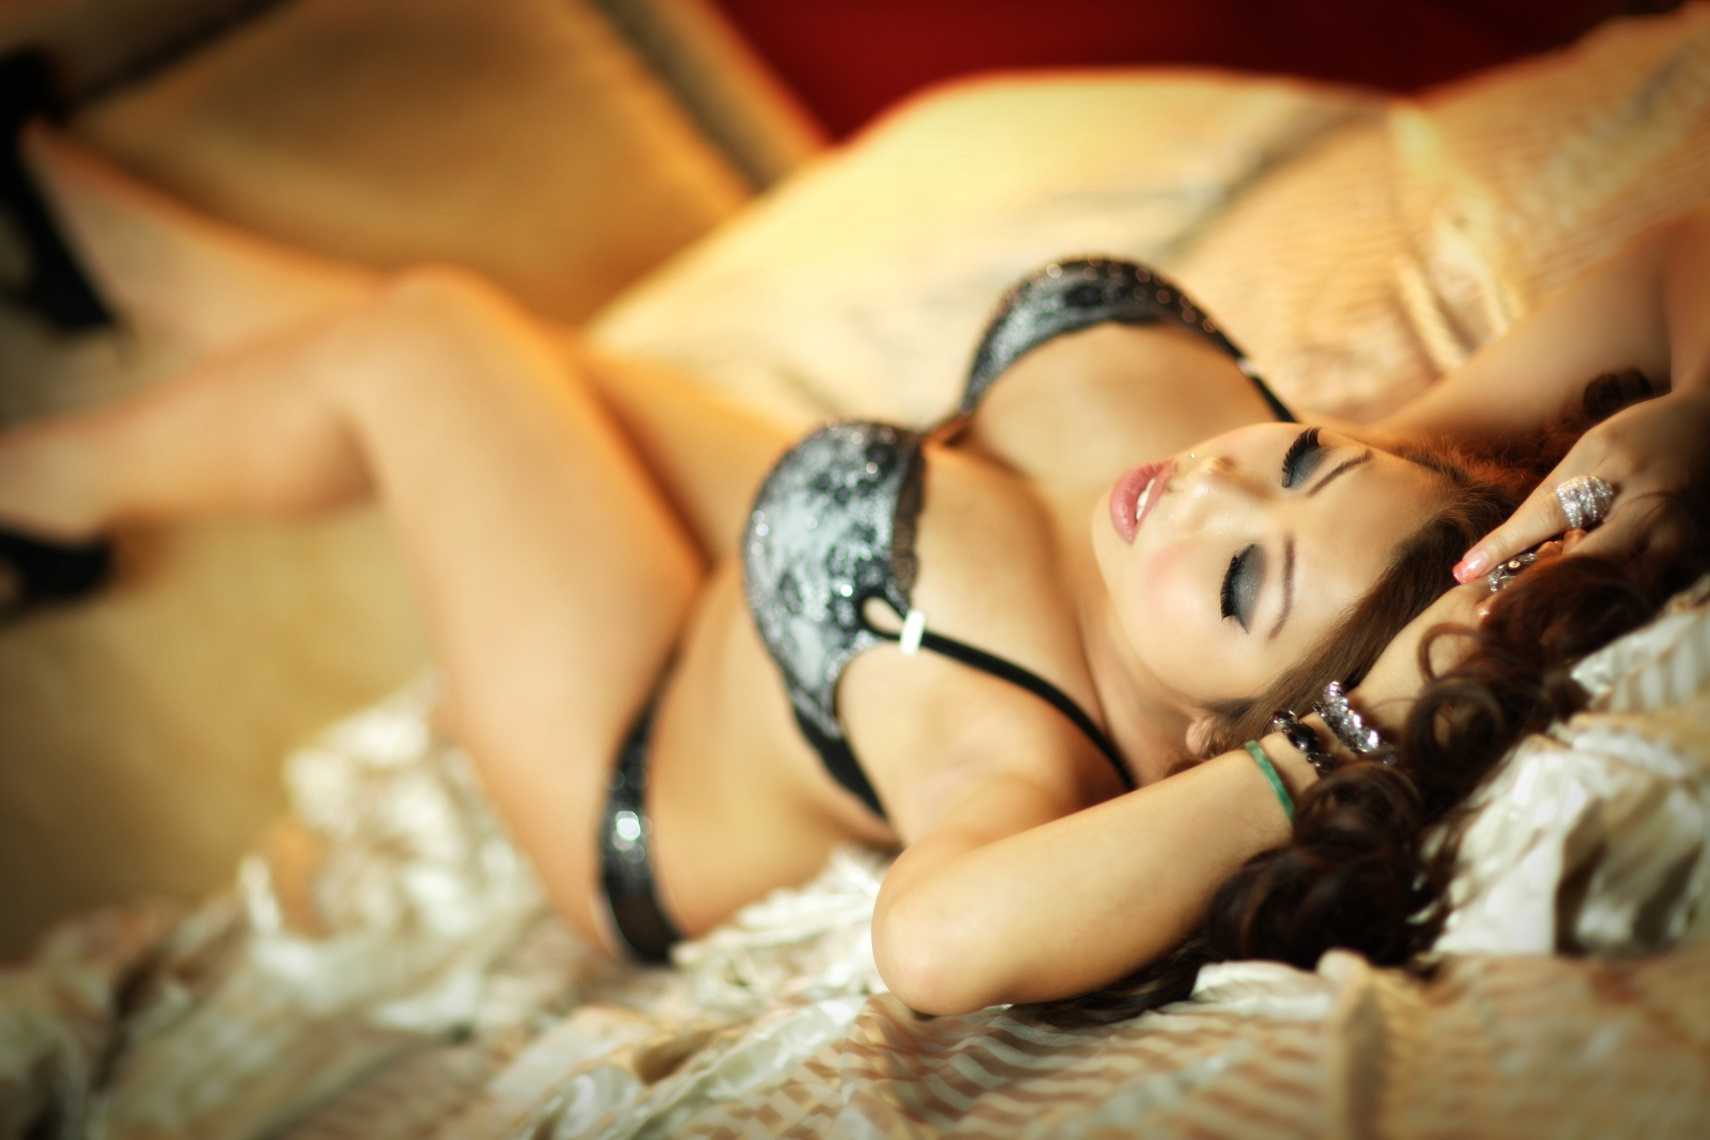 024Boudoirforwwebsite